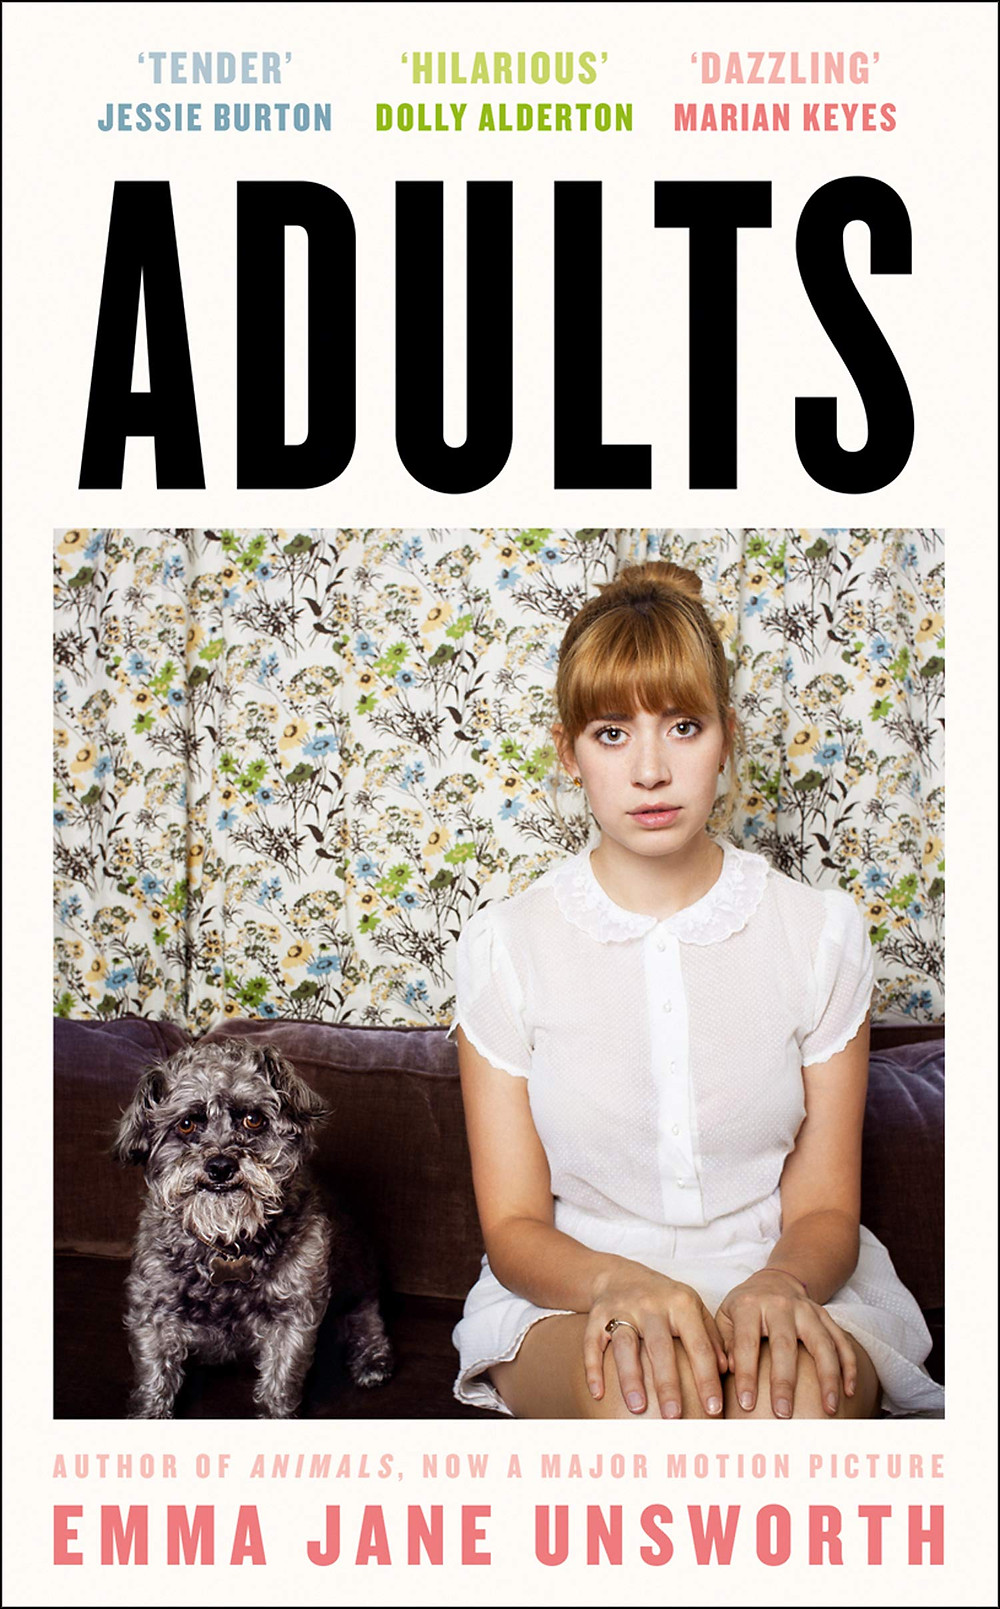 grown ups (US)/Adults(UK) by Emma Jane Unsworth